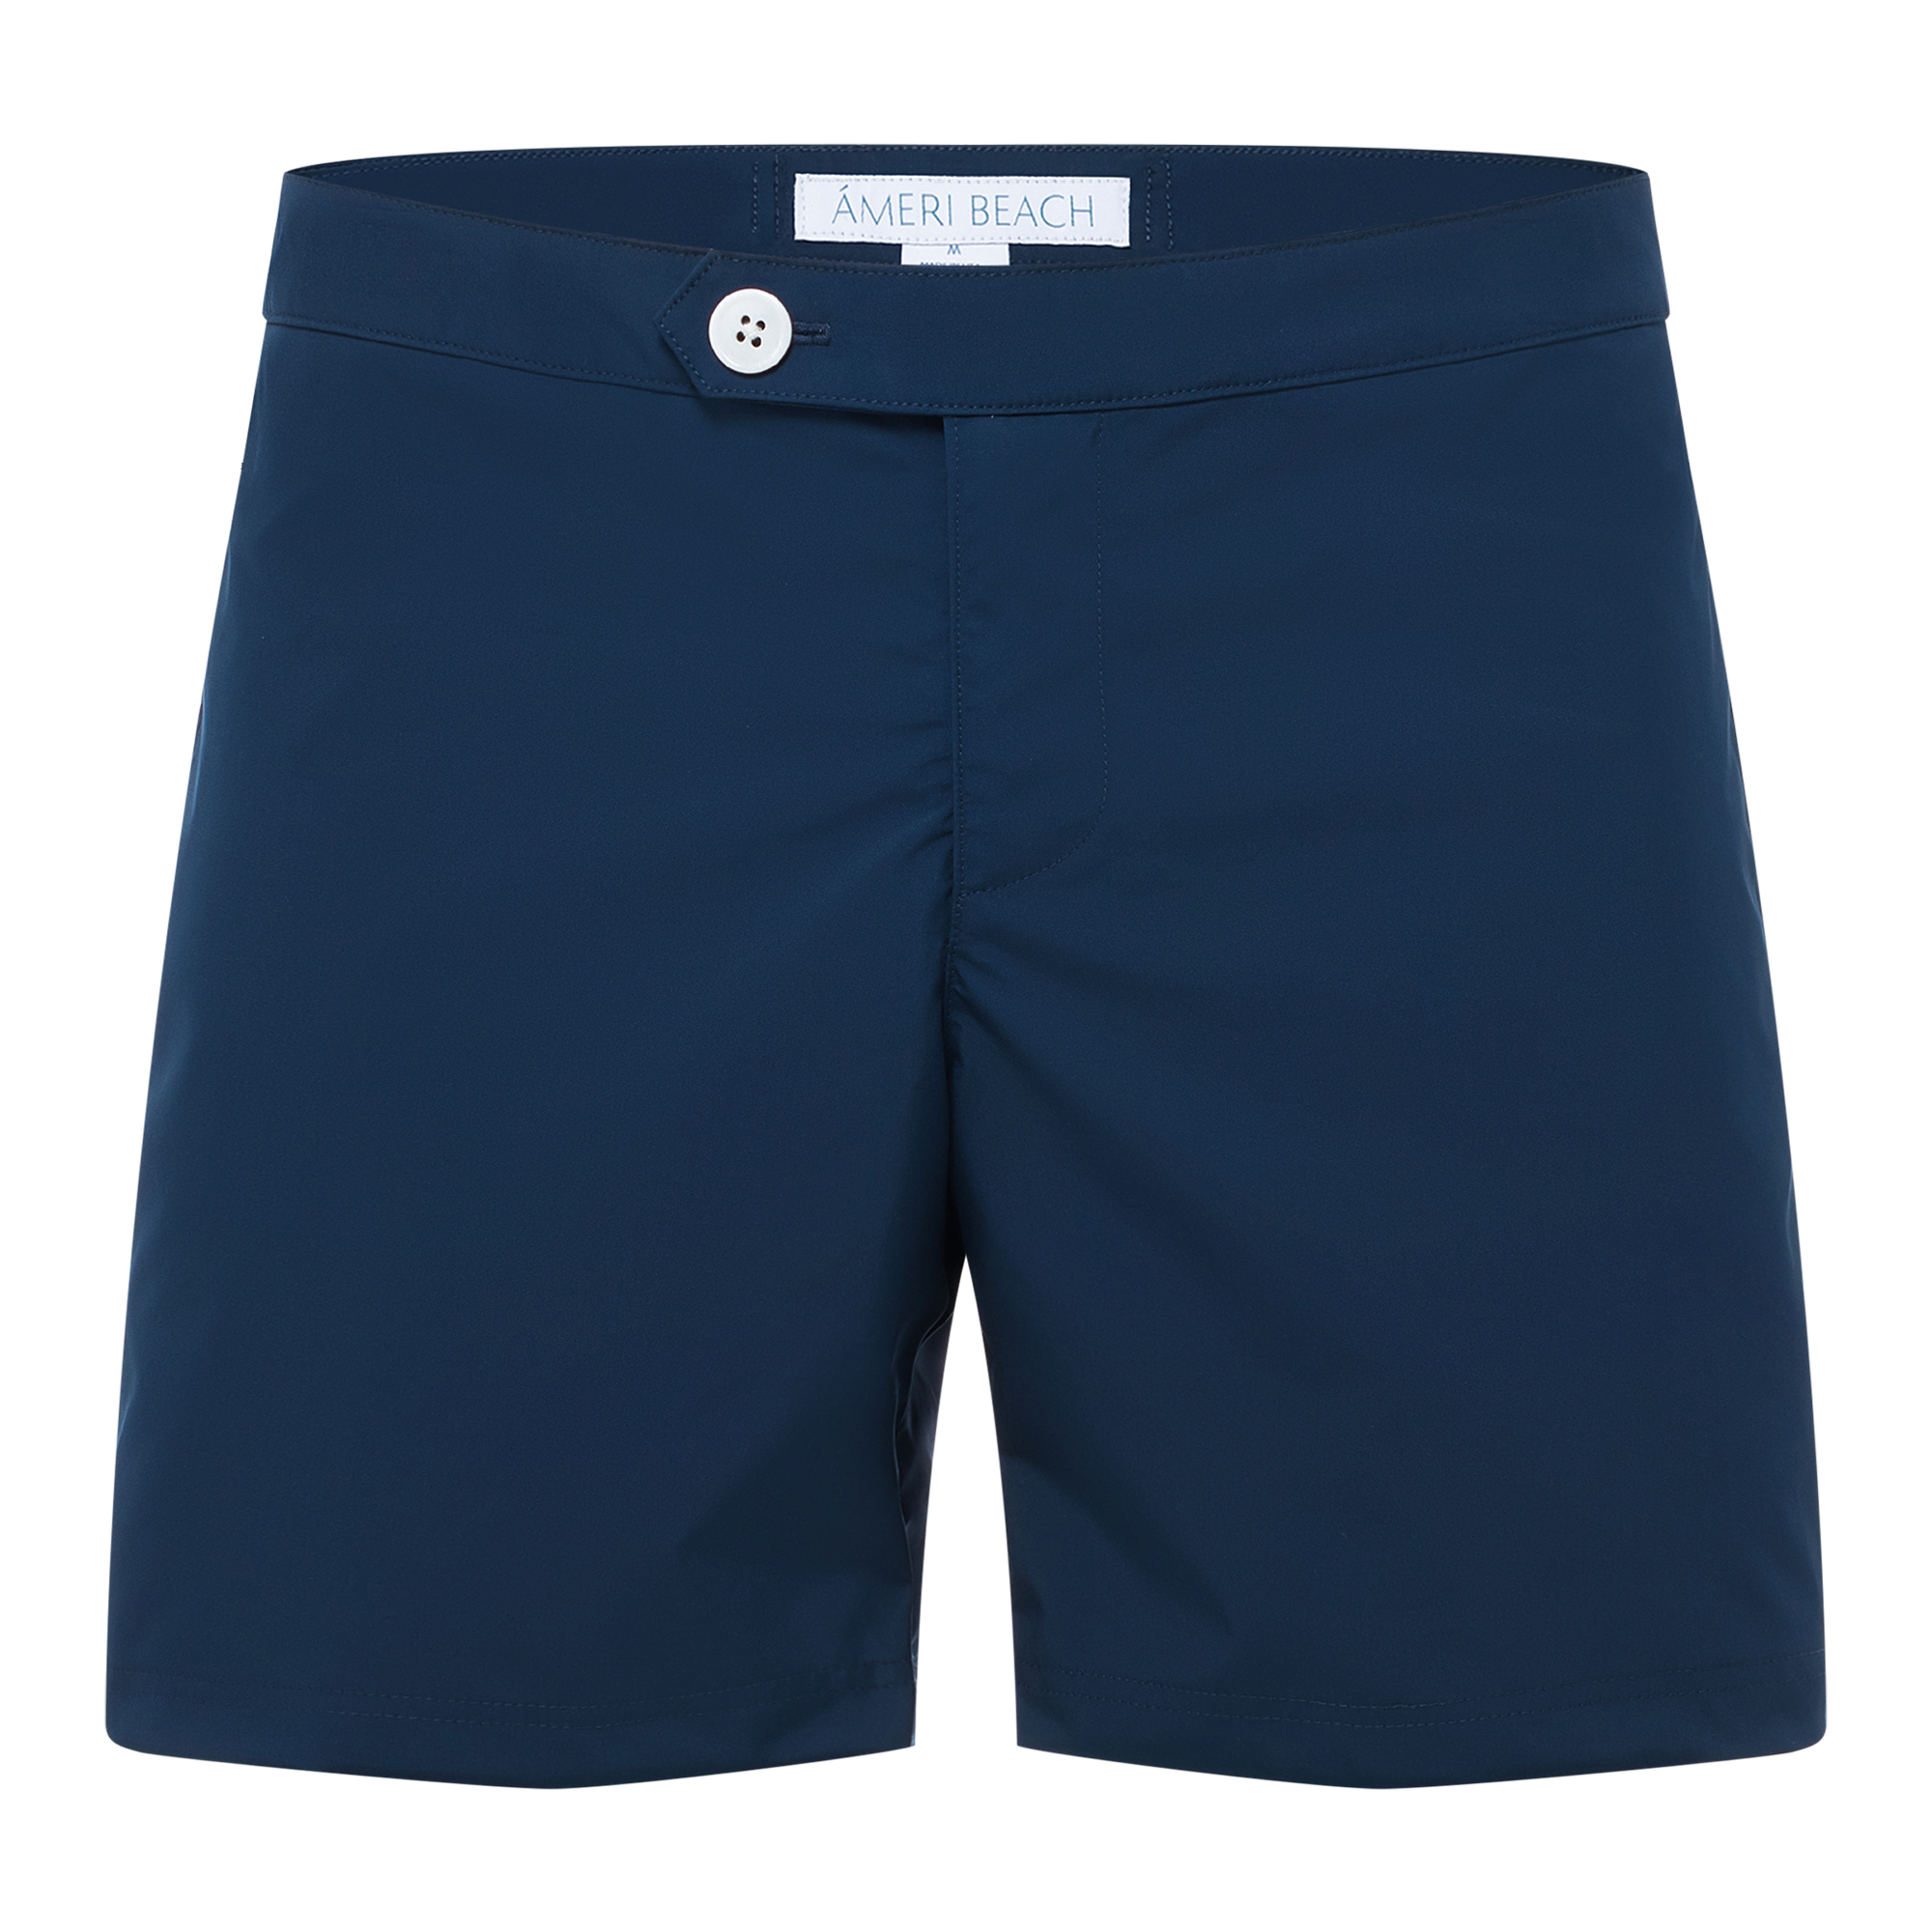 blue Shorts product photography